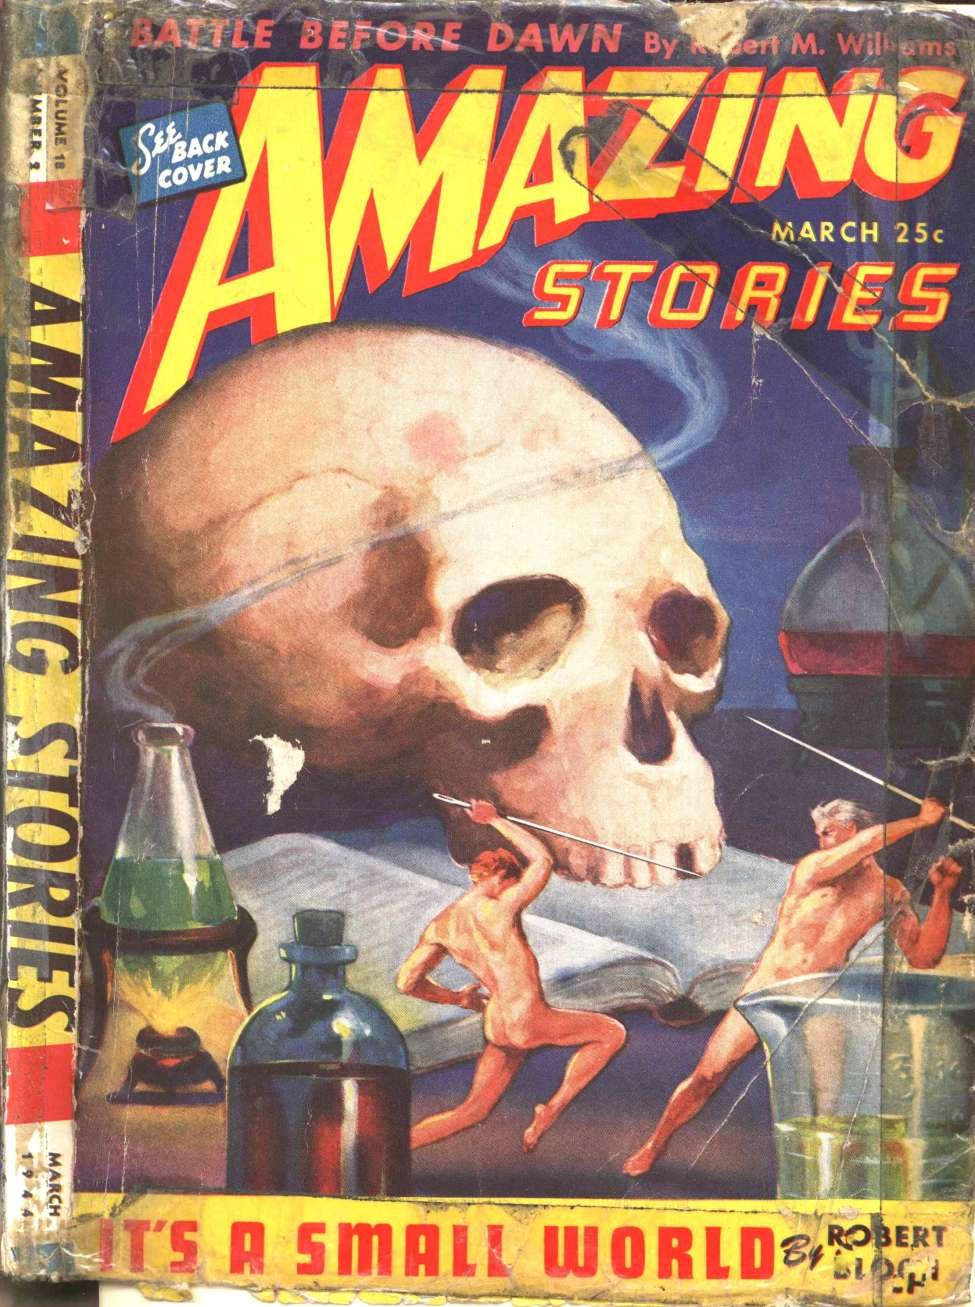 Comic Book Cover For Amazing Stories v18 02 - It's a Small World - Robert Bloch